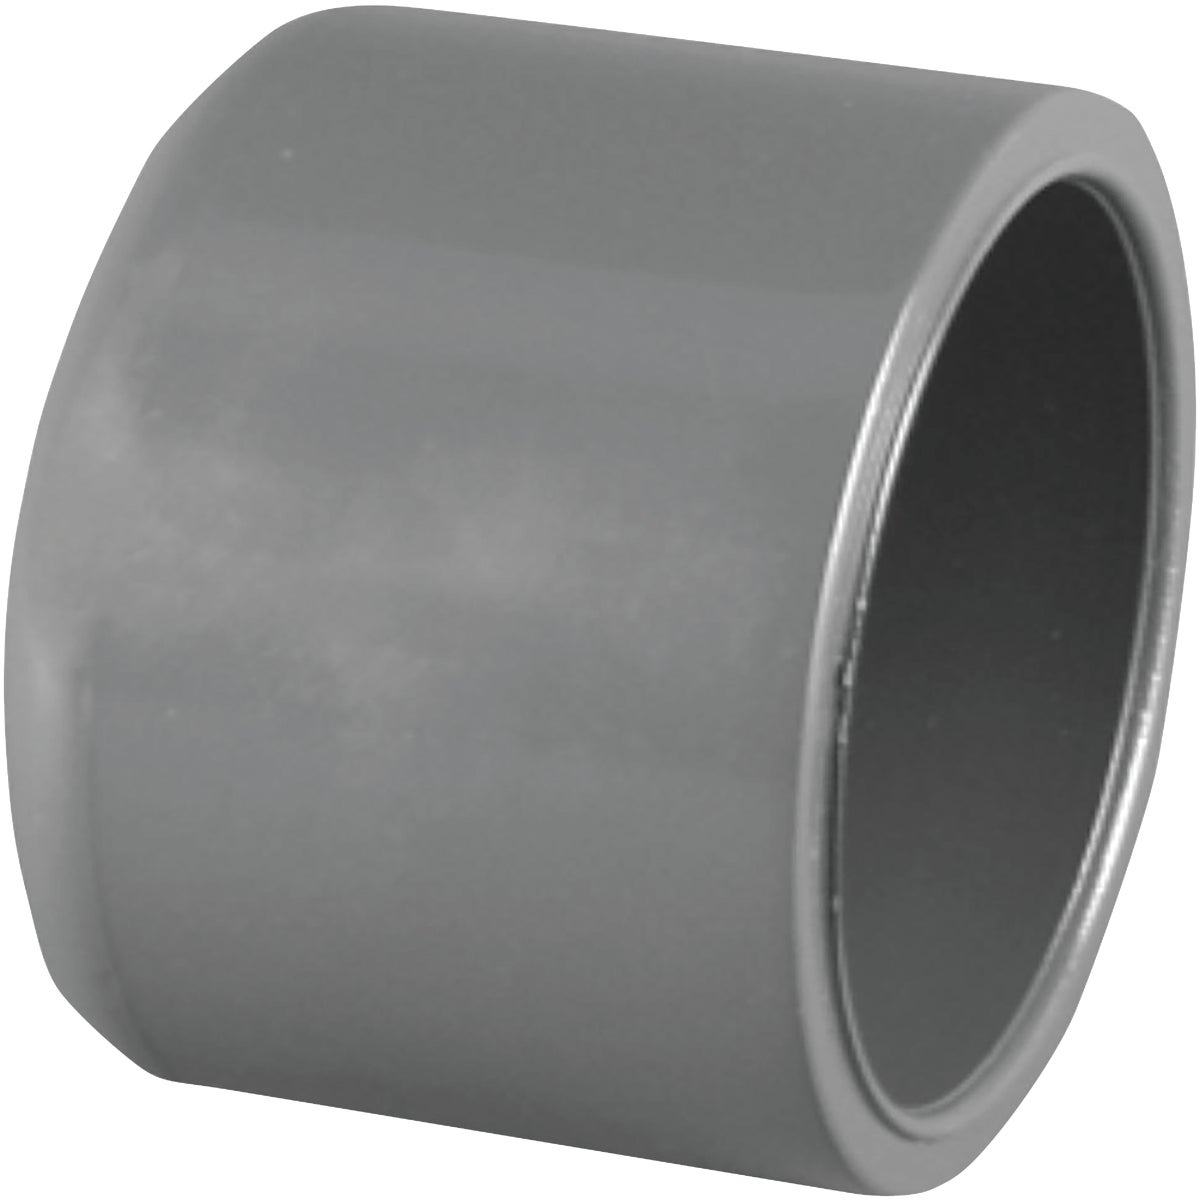 "1/2"" SCH80 PVC CAP - 301558 by Genova Inc"